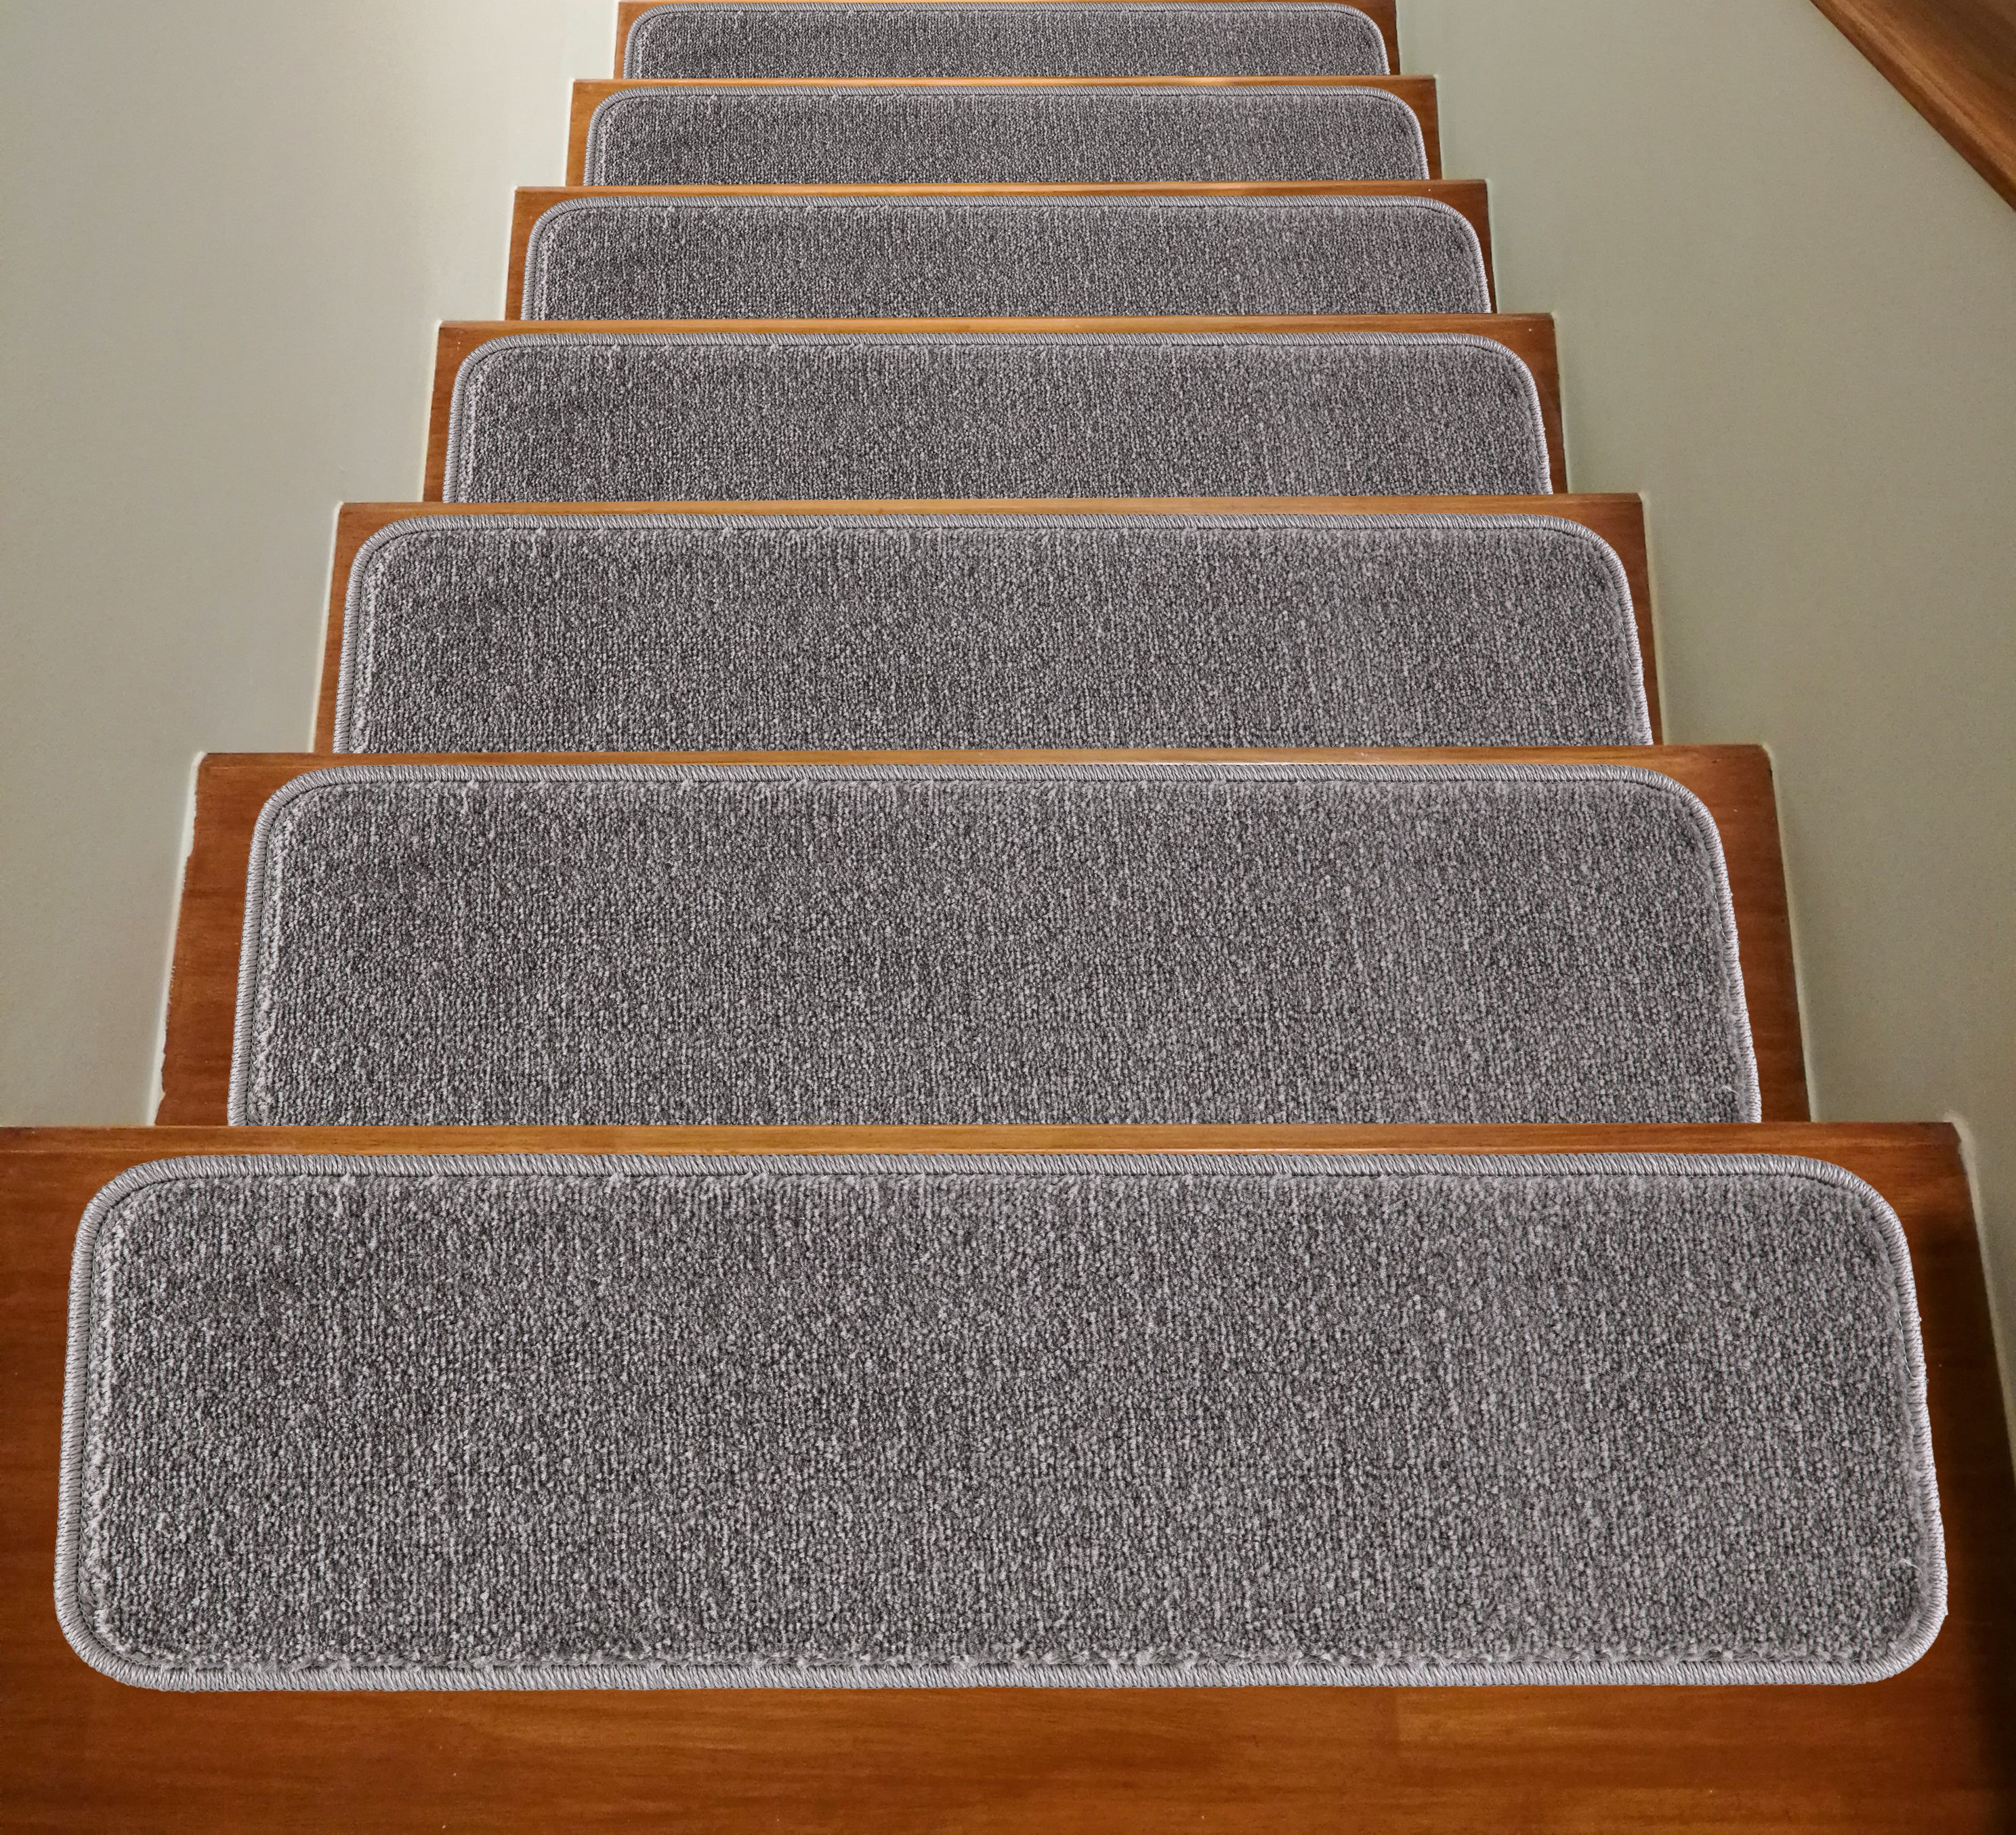 Mod Arte Solo Collection Stair Treads Modern Contemporary Solid Colors Rubber Backing Non Slip Gray Set Of 7 8 5 X 26 Stair Railing Design Carpet Stair Treads